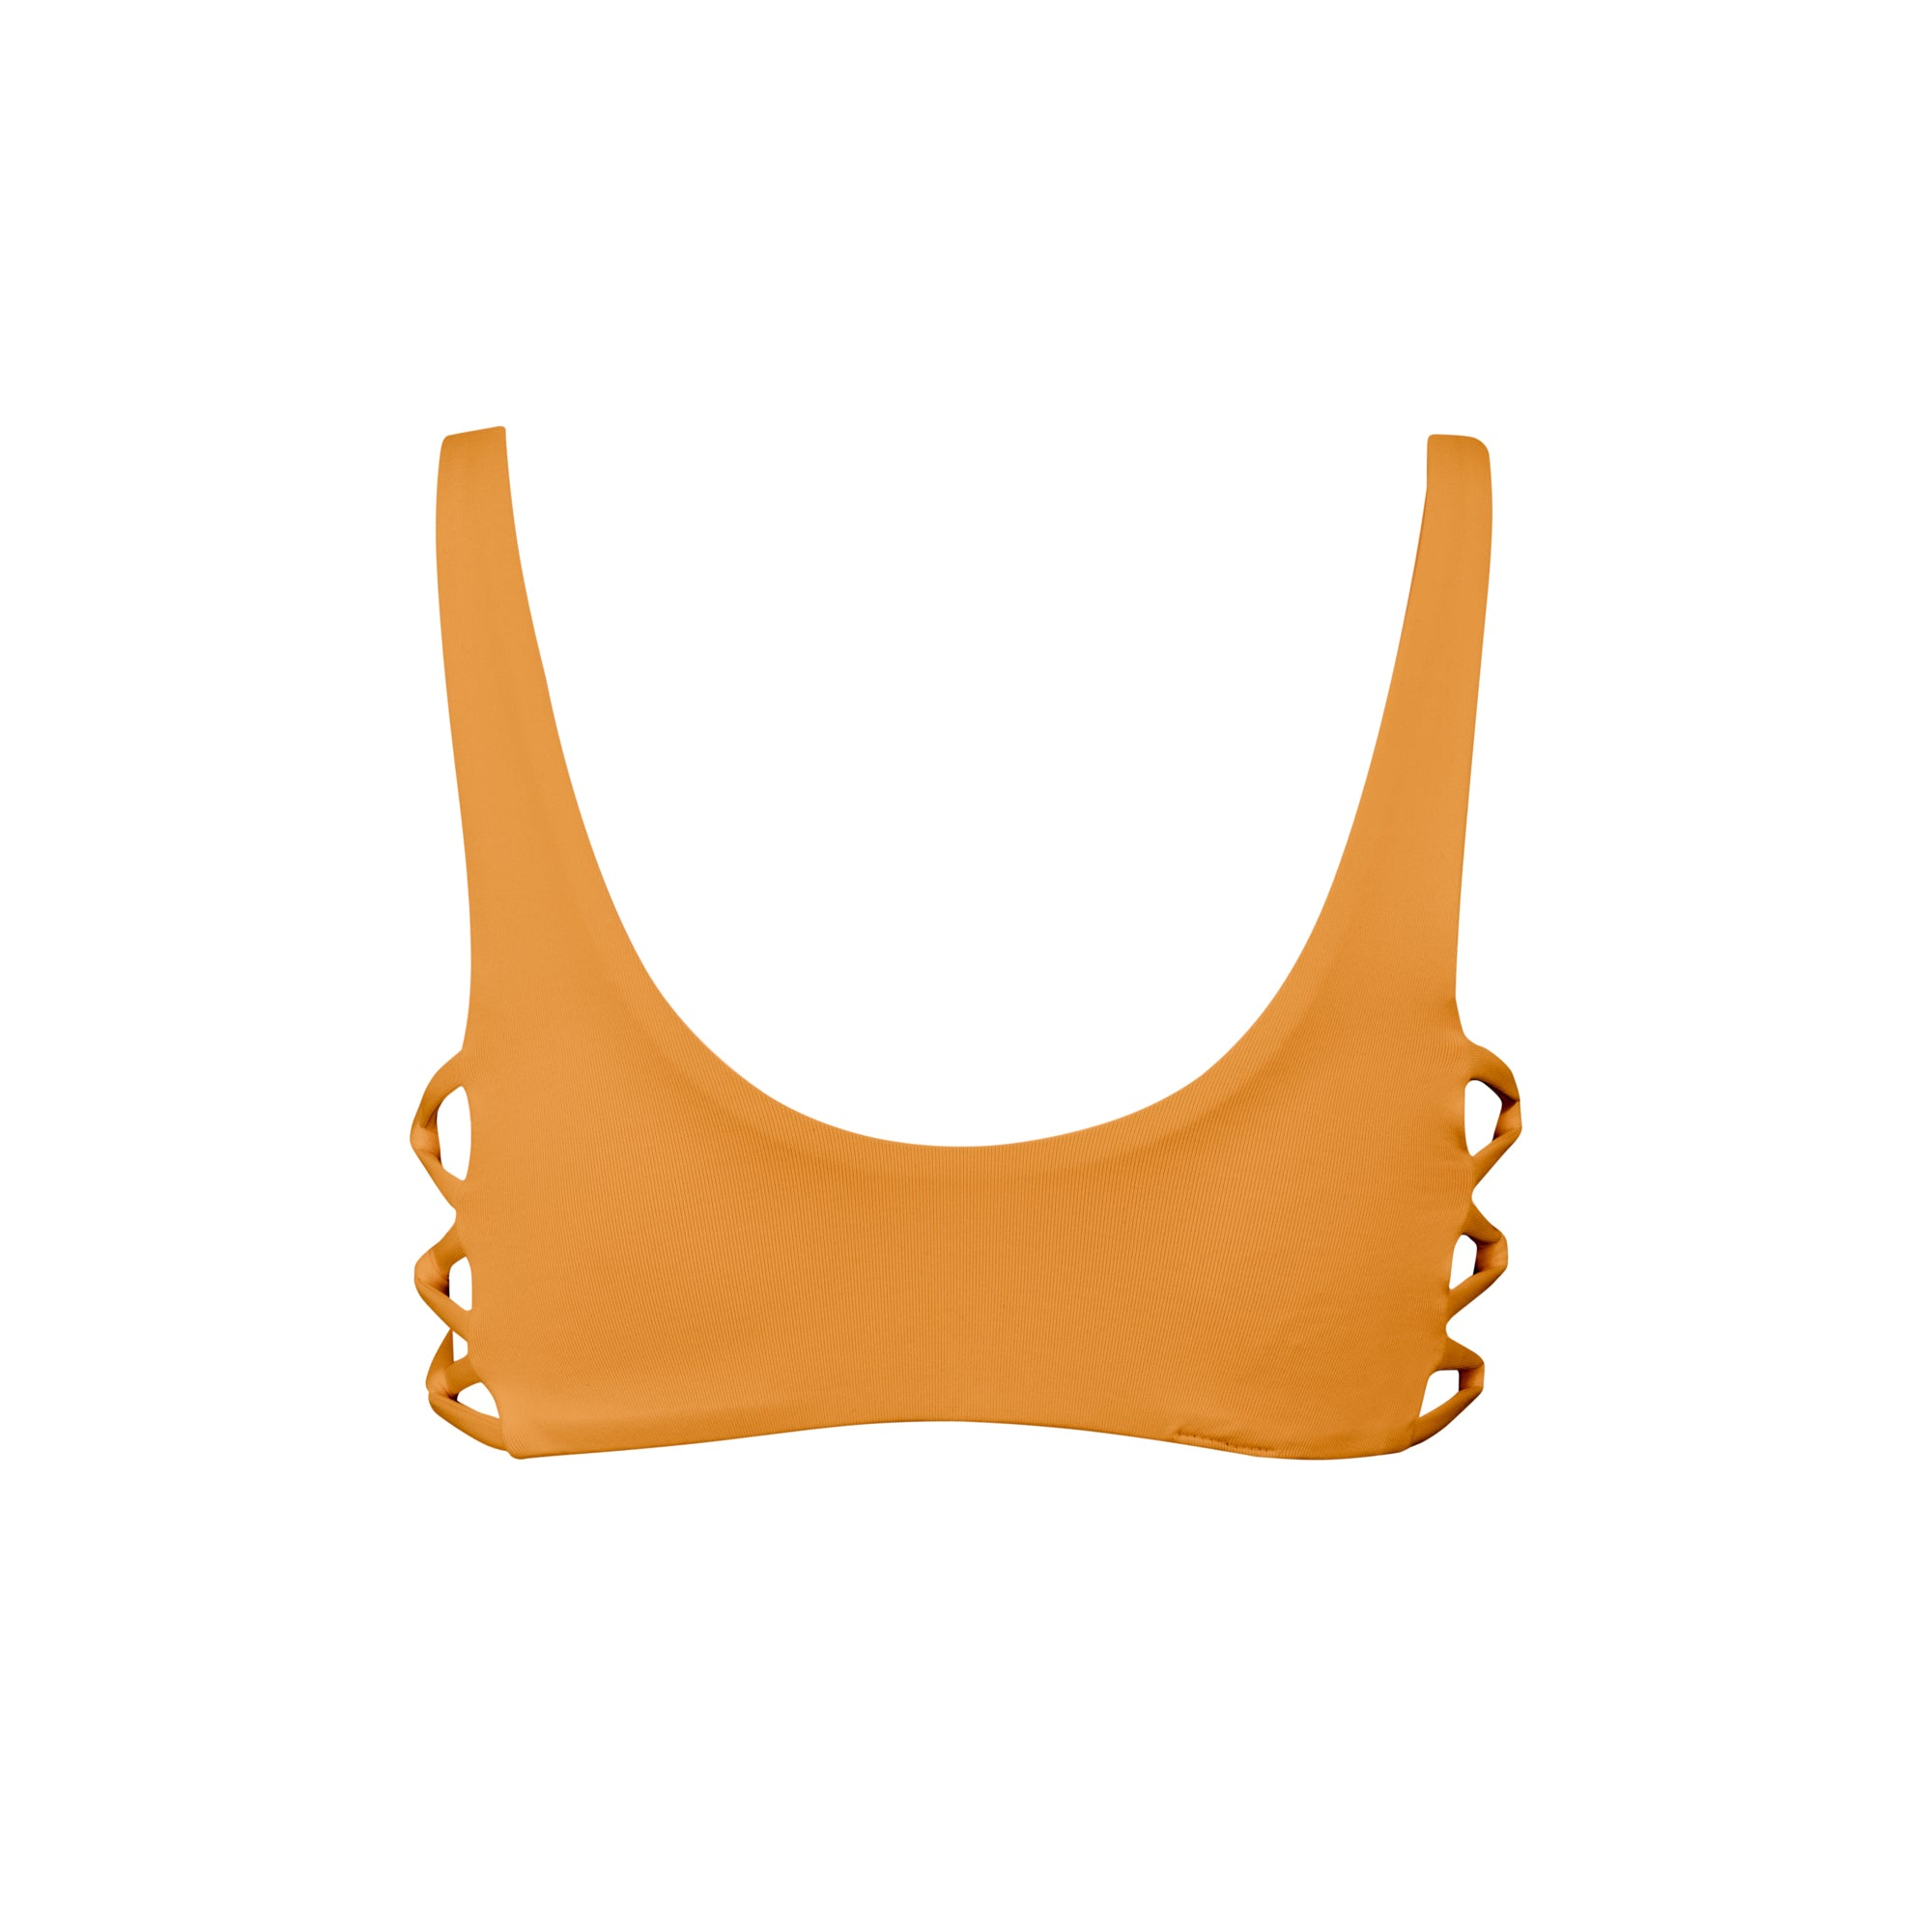 Fizz Bikini Top in Pumpkin by Tuhkana Swimwear